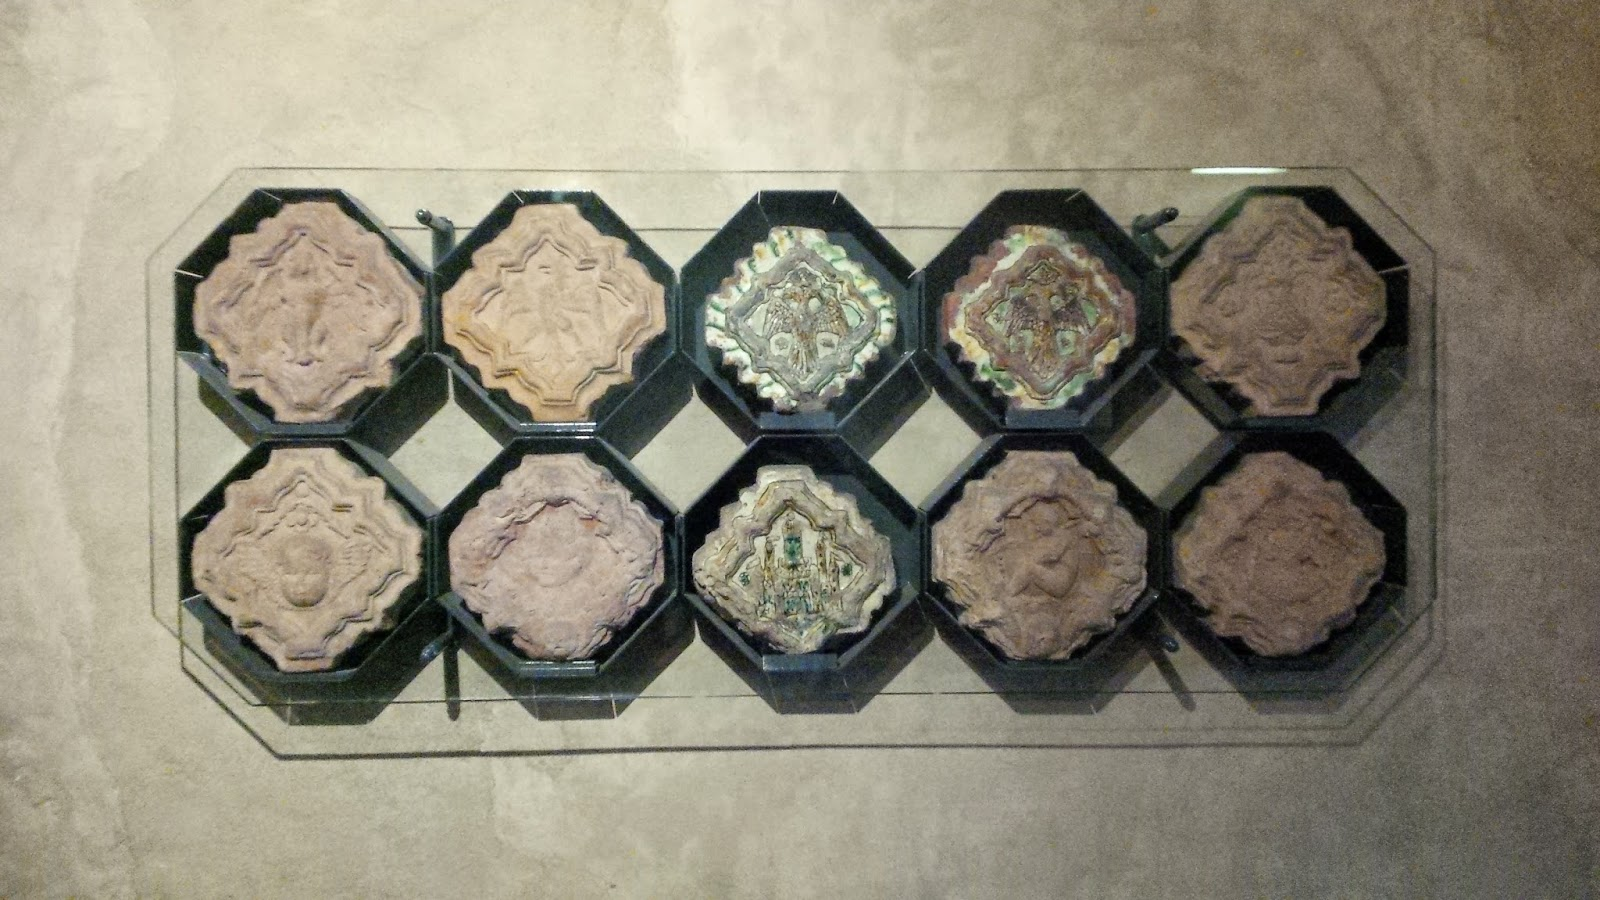 Terracotta tiles from the second half of the 15th century on the wall in Juliet's House